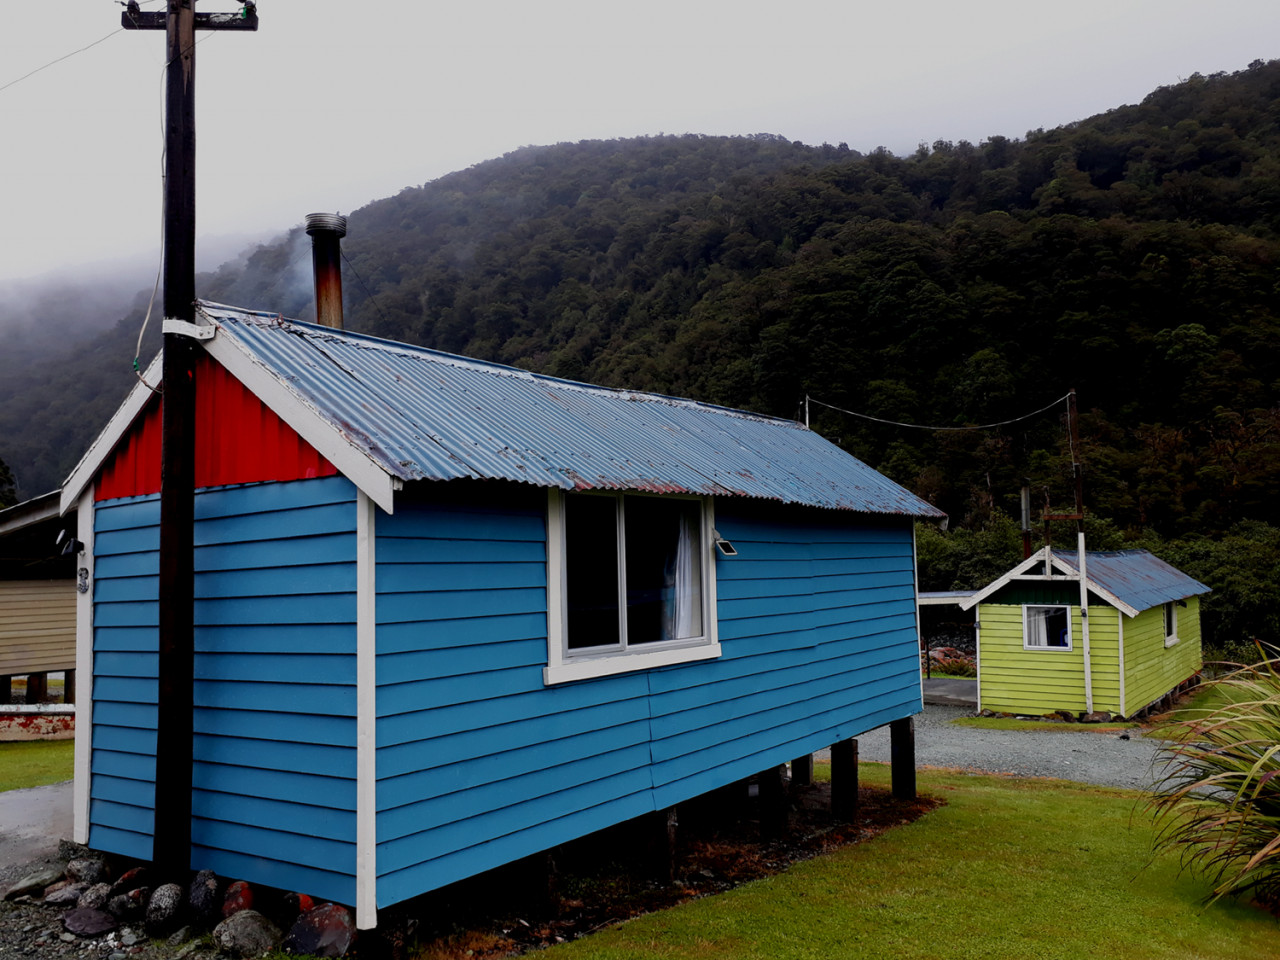 We stayed in the blue cabin in the foreground. The weather wasn't great, but when we lit our fire, it was pretty cosy.